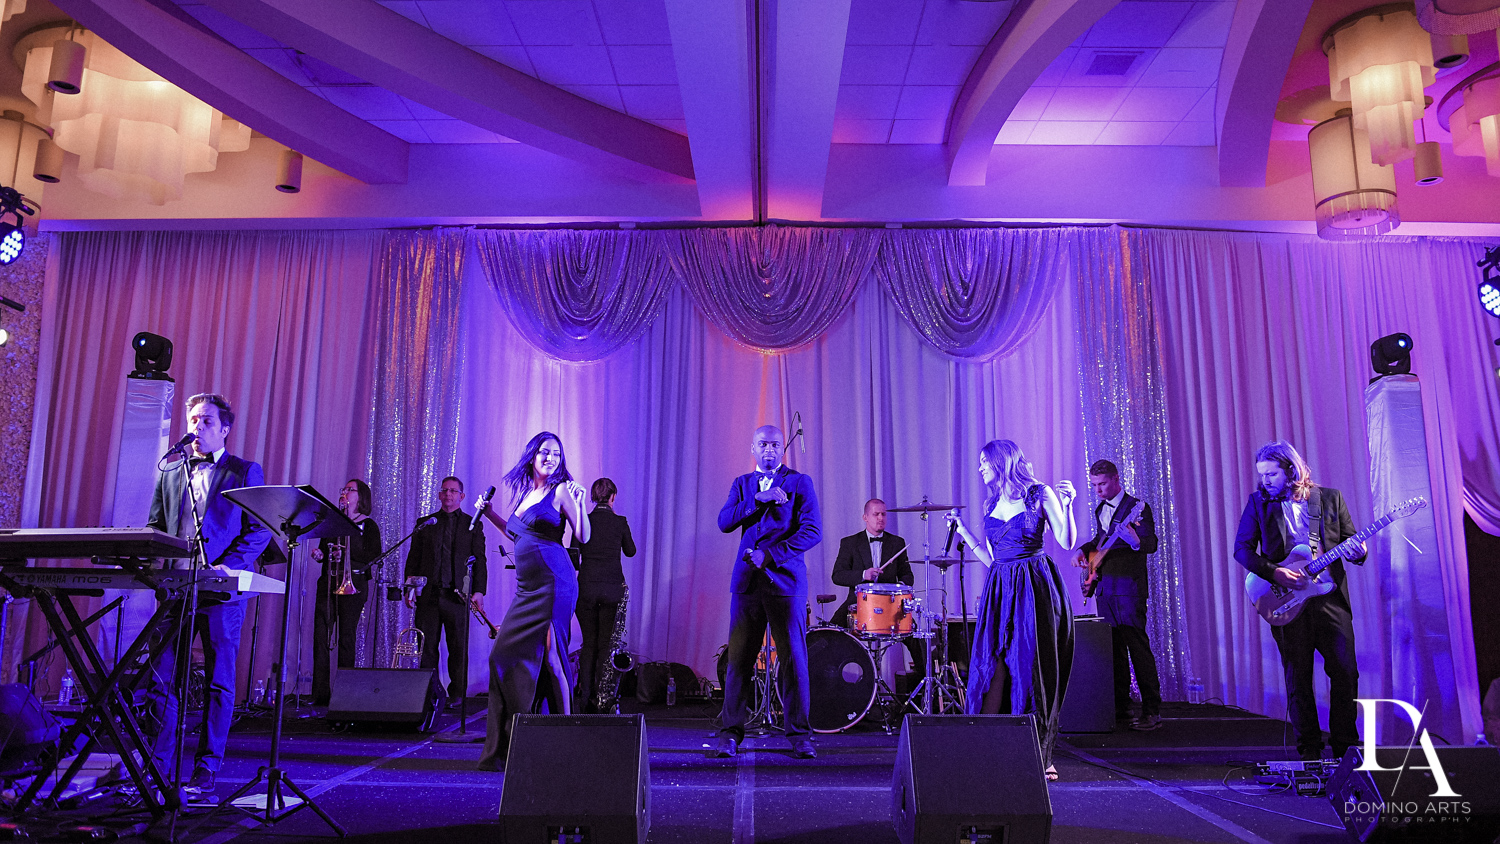 Higher ground band at Wedding Photography in South Florida at Fort Lauderdale Marriott Harbor Beach Resort & Spa by Domino Arts Photography